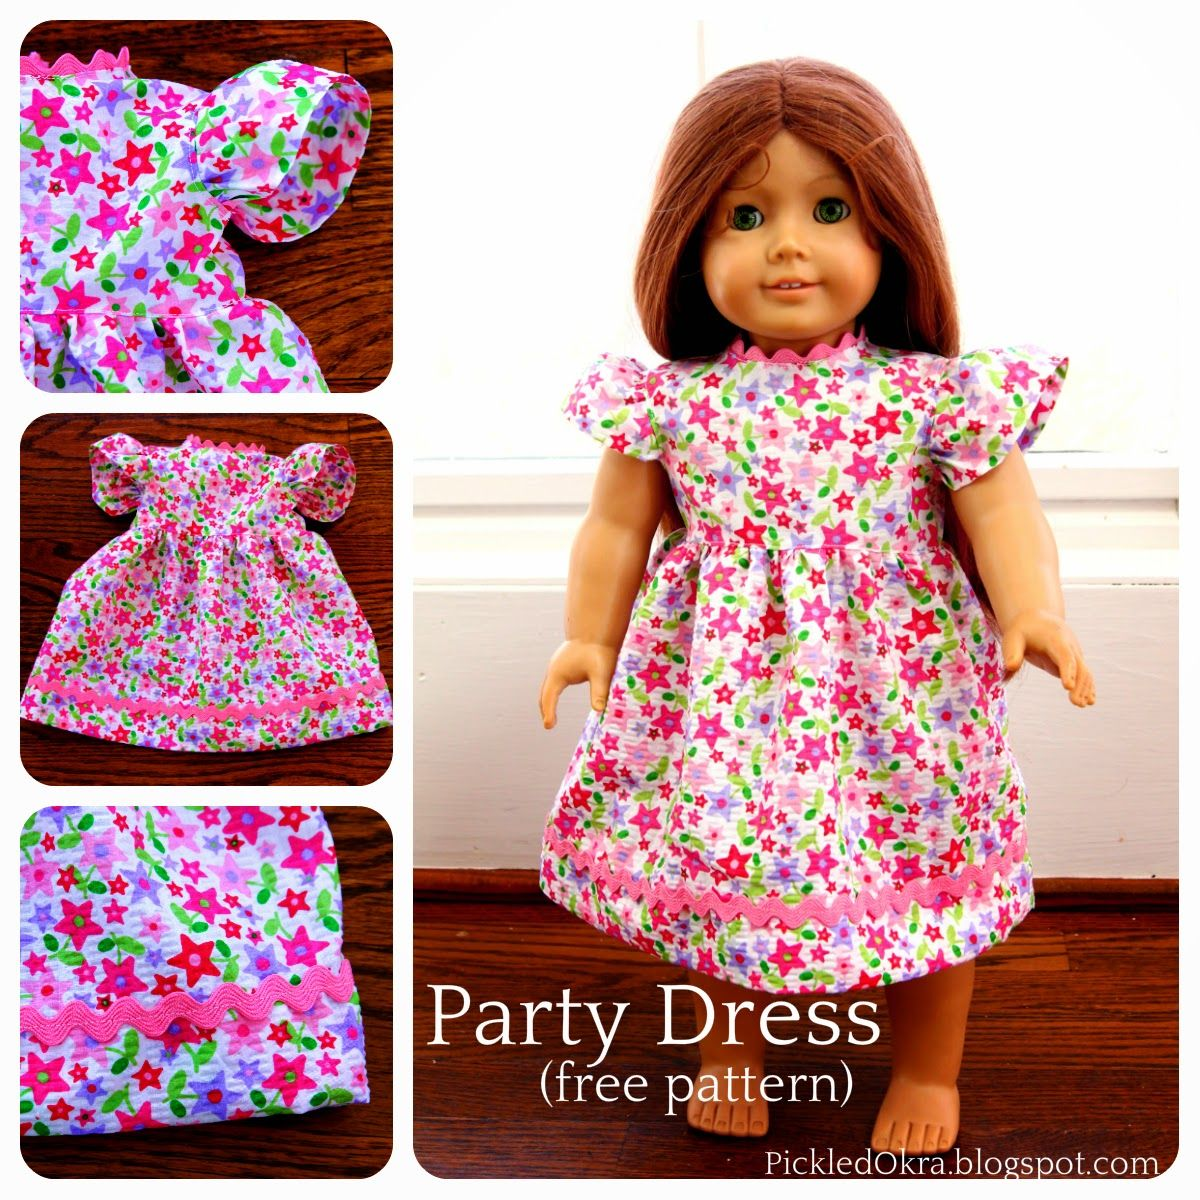 Here is my little darling in her new spring dress i made a matching